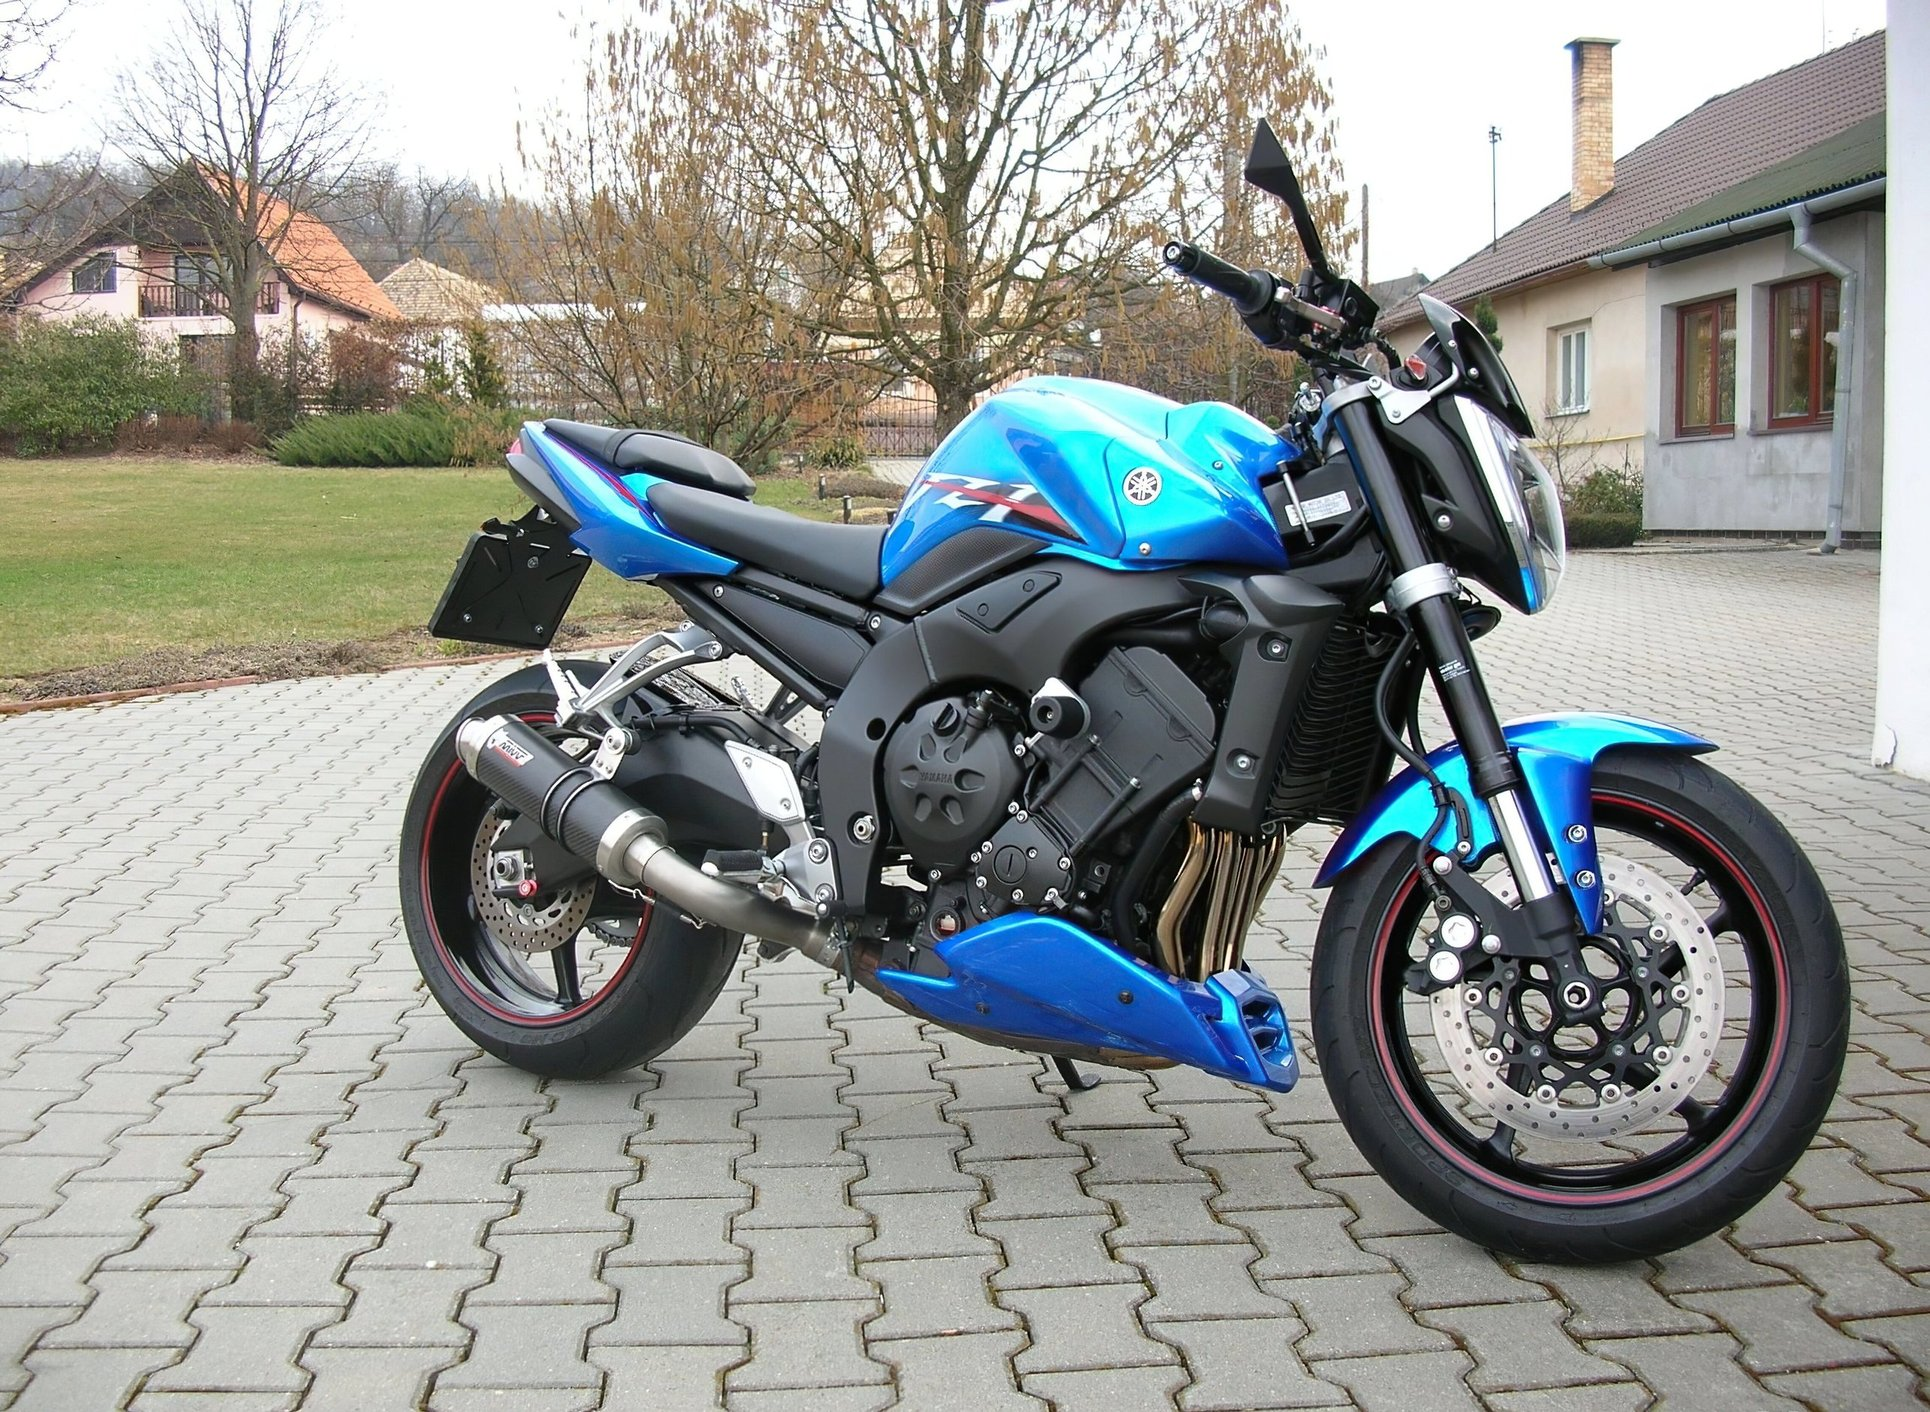 2005 Yamaha Fz1 For Sale 34 Used Motorcycles From $2,300